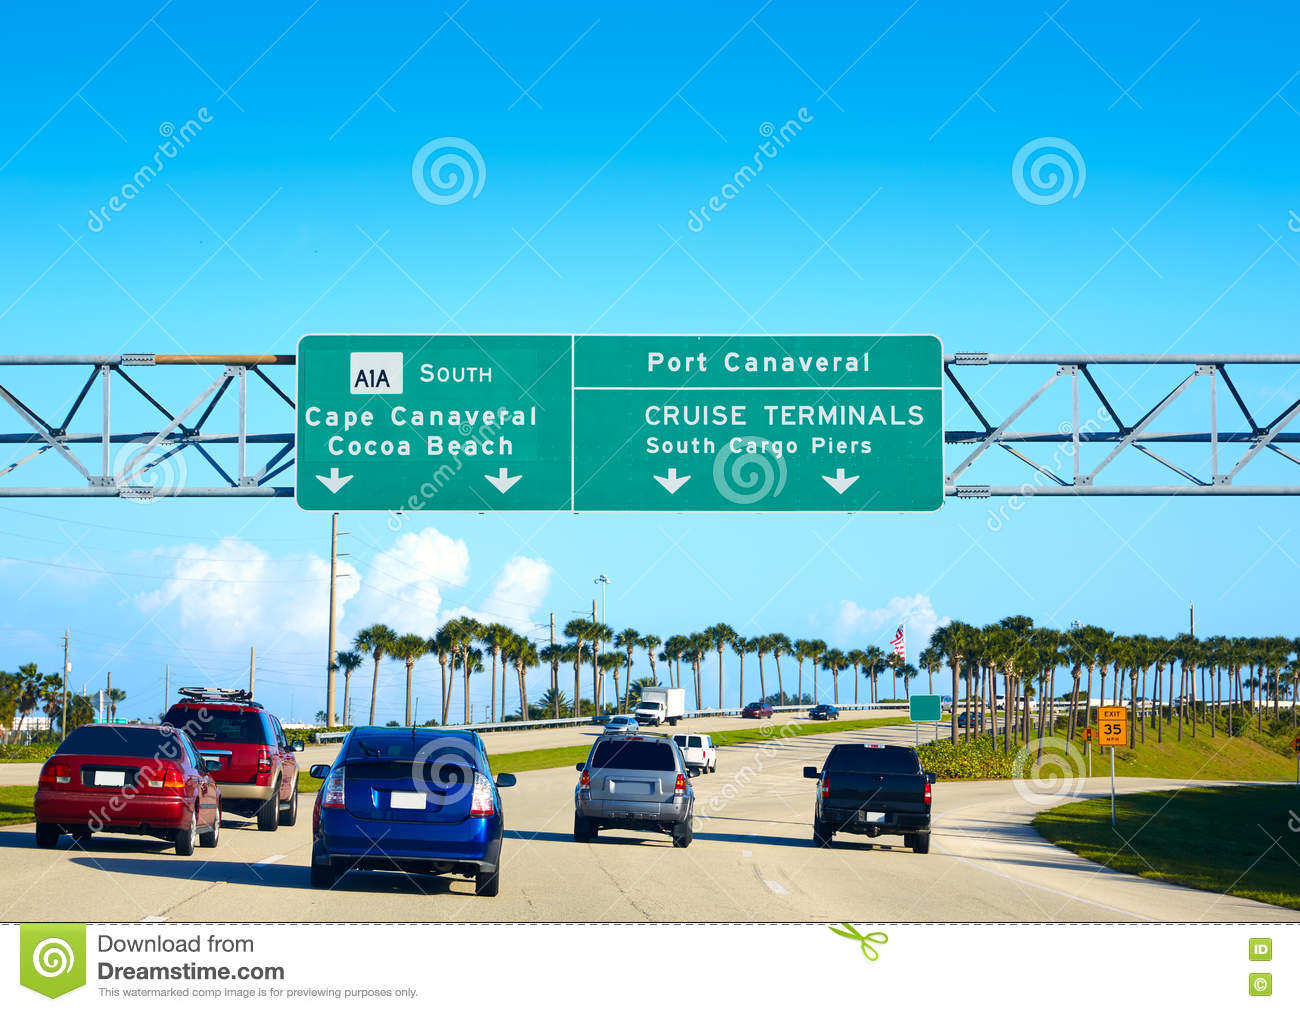 port canaveral online dating Shuttle to port canaveral now provides group transportation service from mco (orlando international airport) to port canaveral shuttle to port canaveral will take you and your group direct.